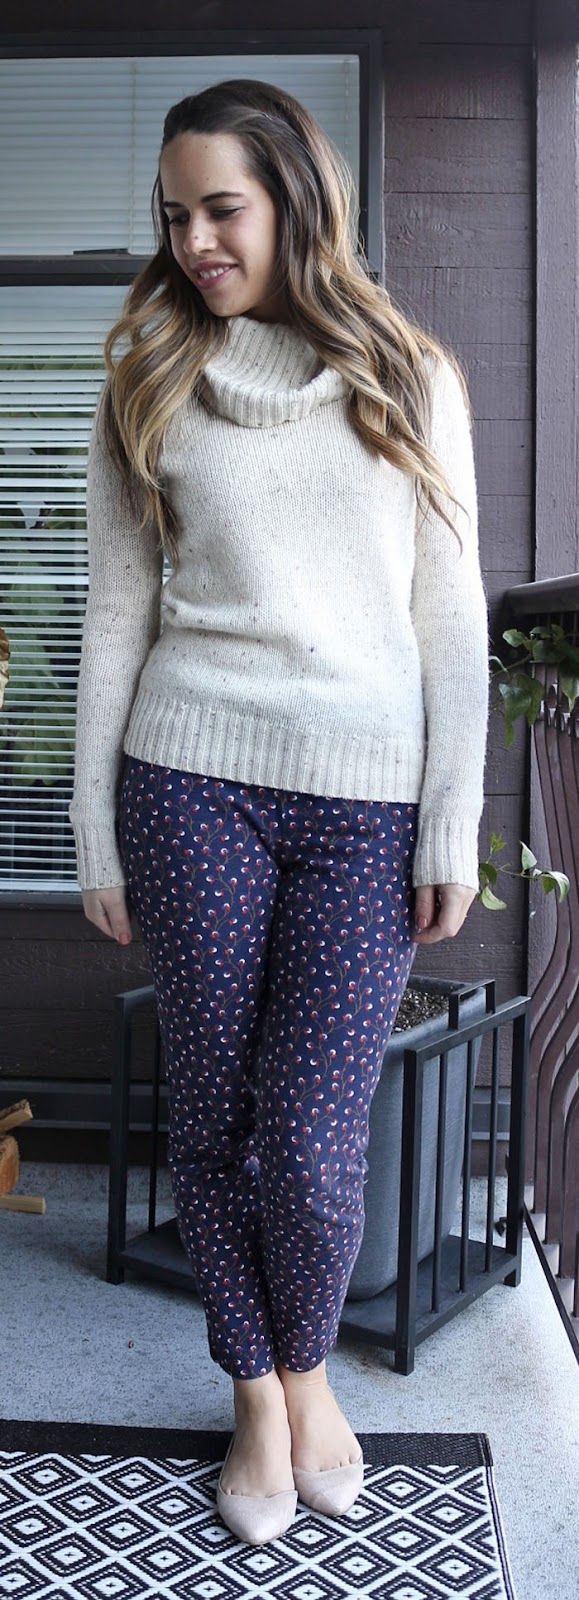 Jules in Flats - Jacob Turtleneck, Old Navy Pixie Pants